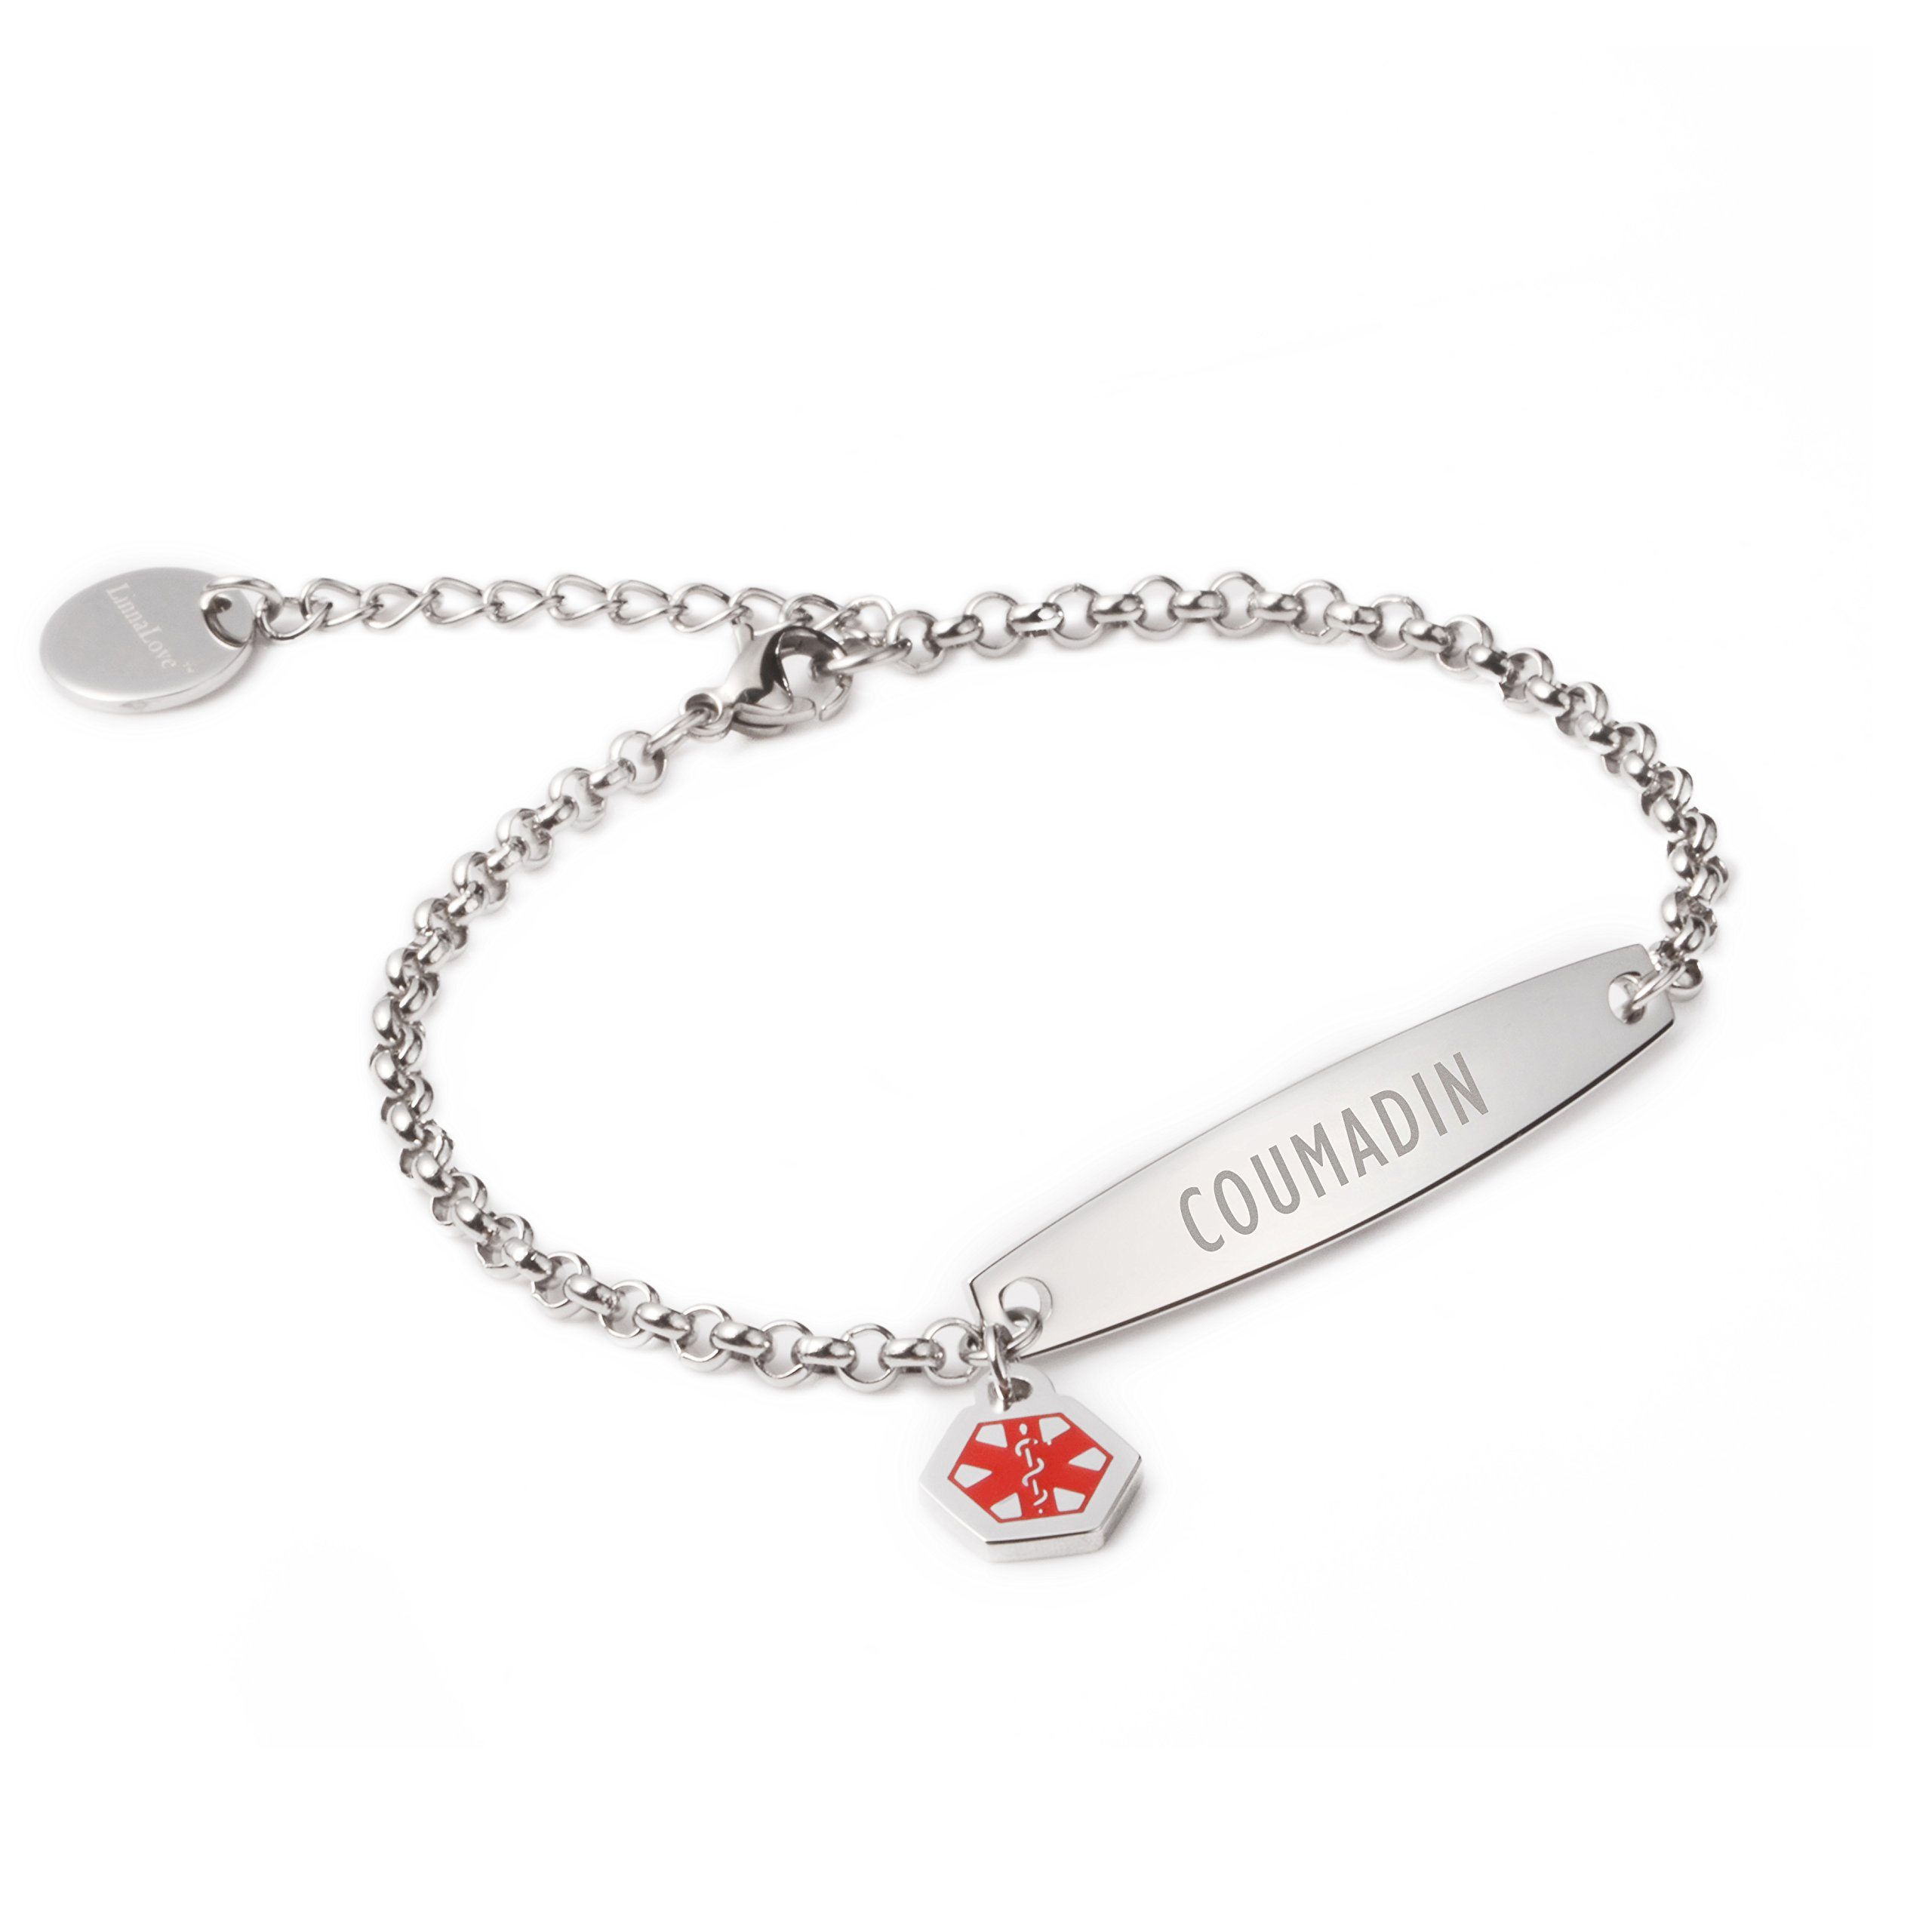 linnalove-Pre-Engraved Simple Rolo Chain Medical id Bracelet for Women & Girl-COUMADIN